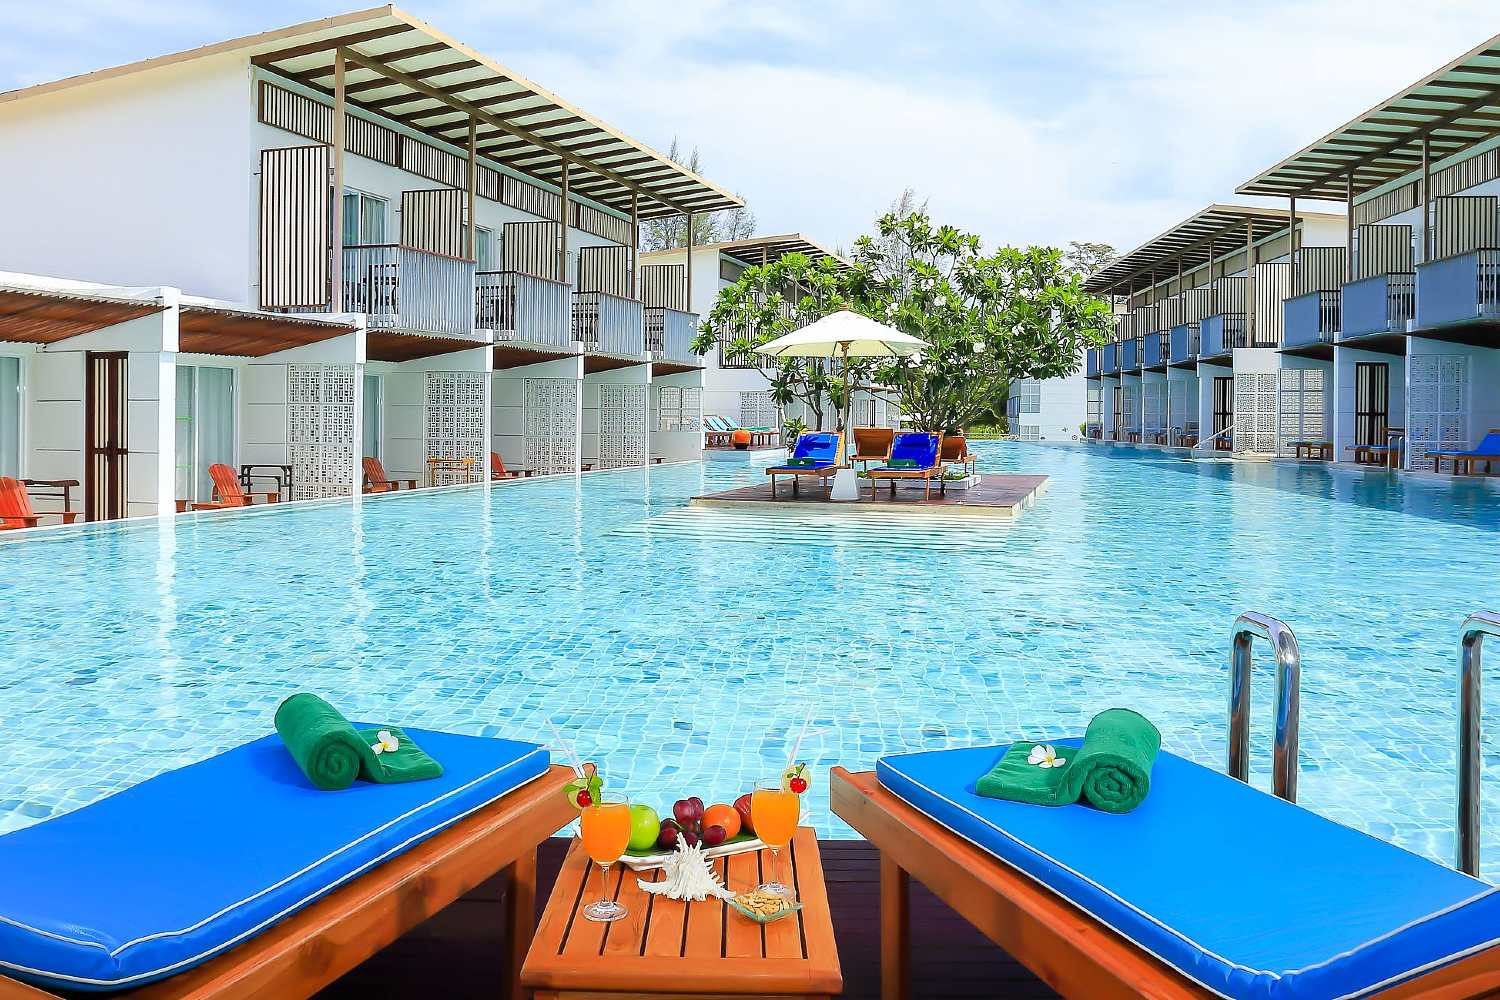 Sun loungers on the private terrace of the hotel room with access to the large swimming pool of the Briza Beach Resort